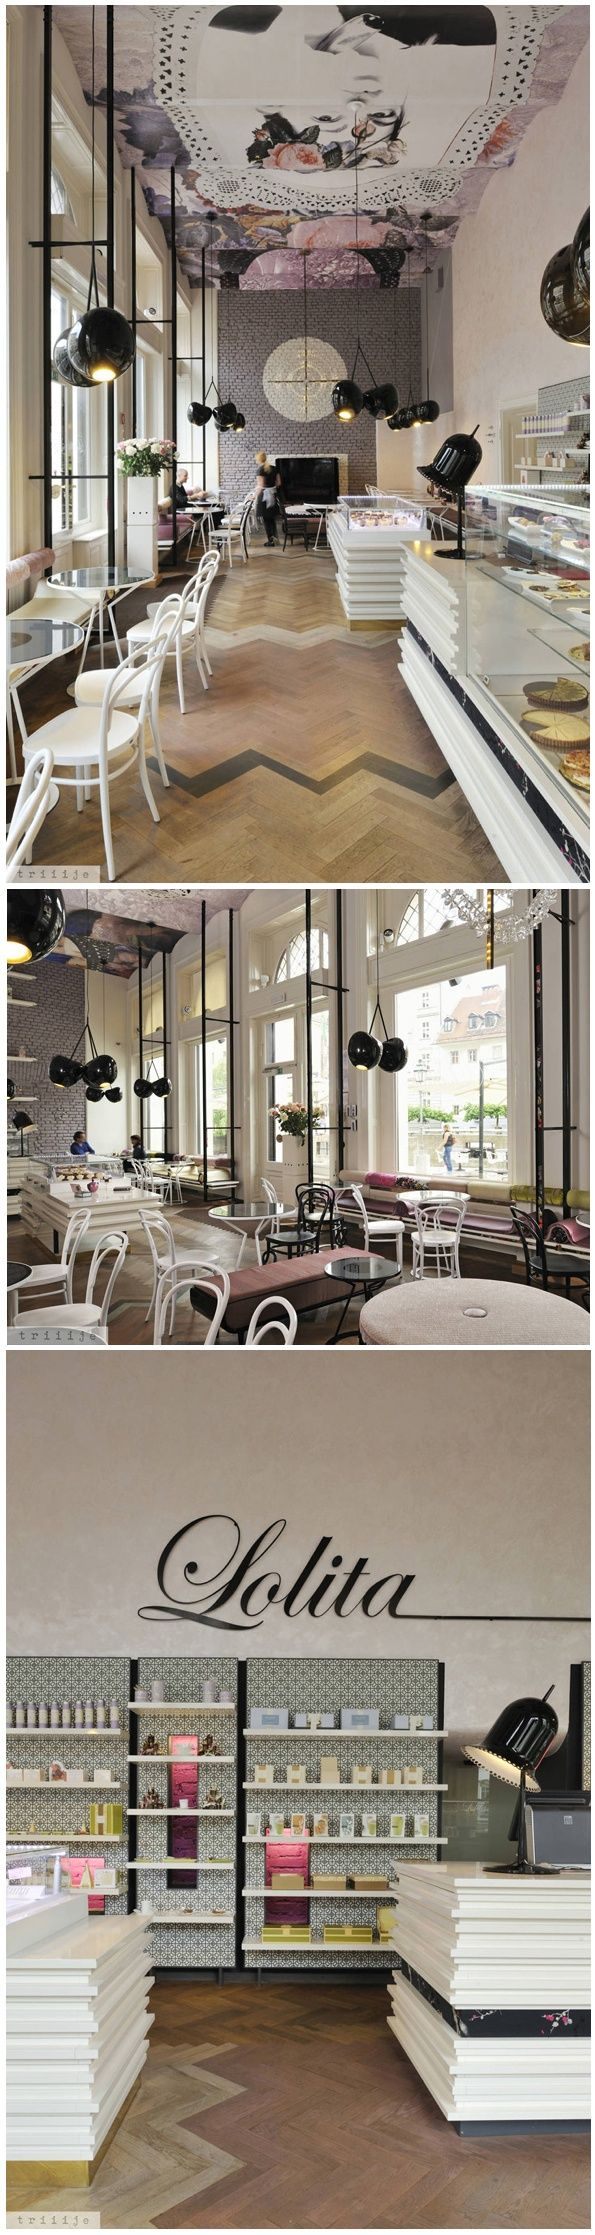 Modern cafe in Paris with high ceilings and interesting